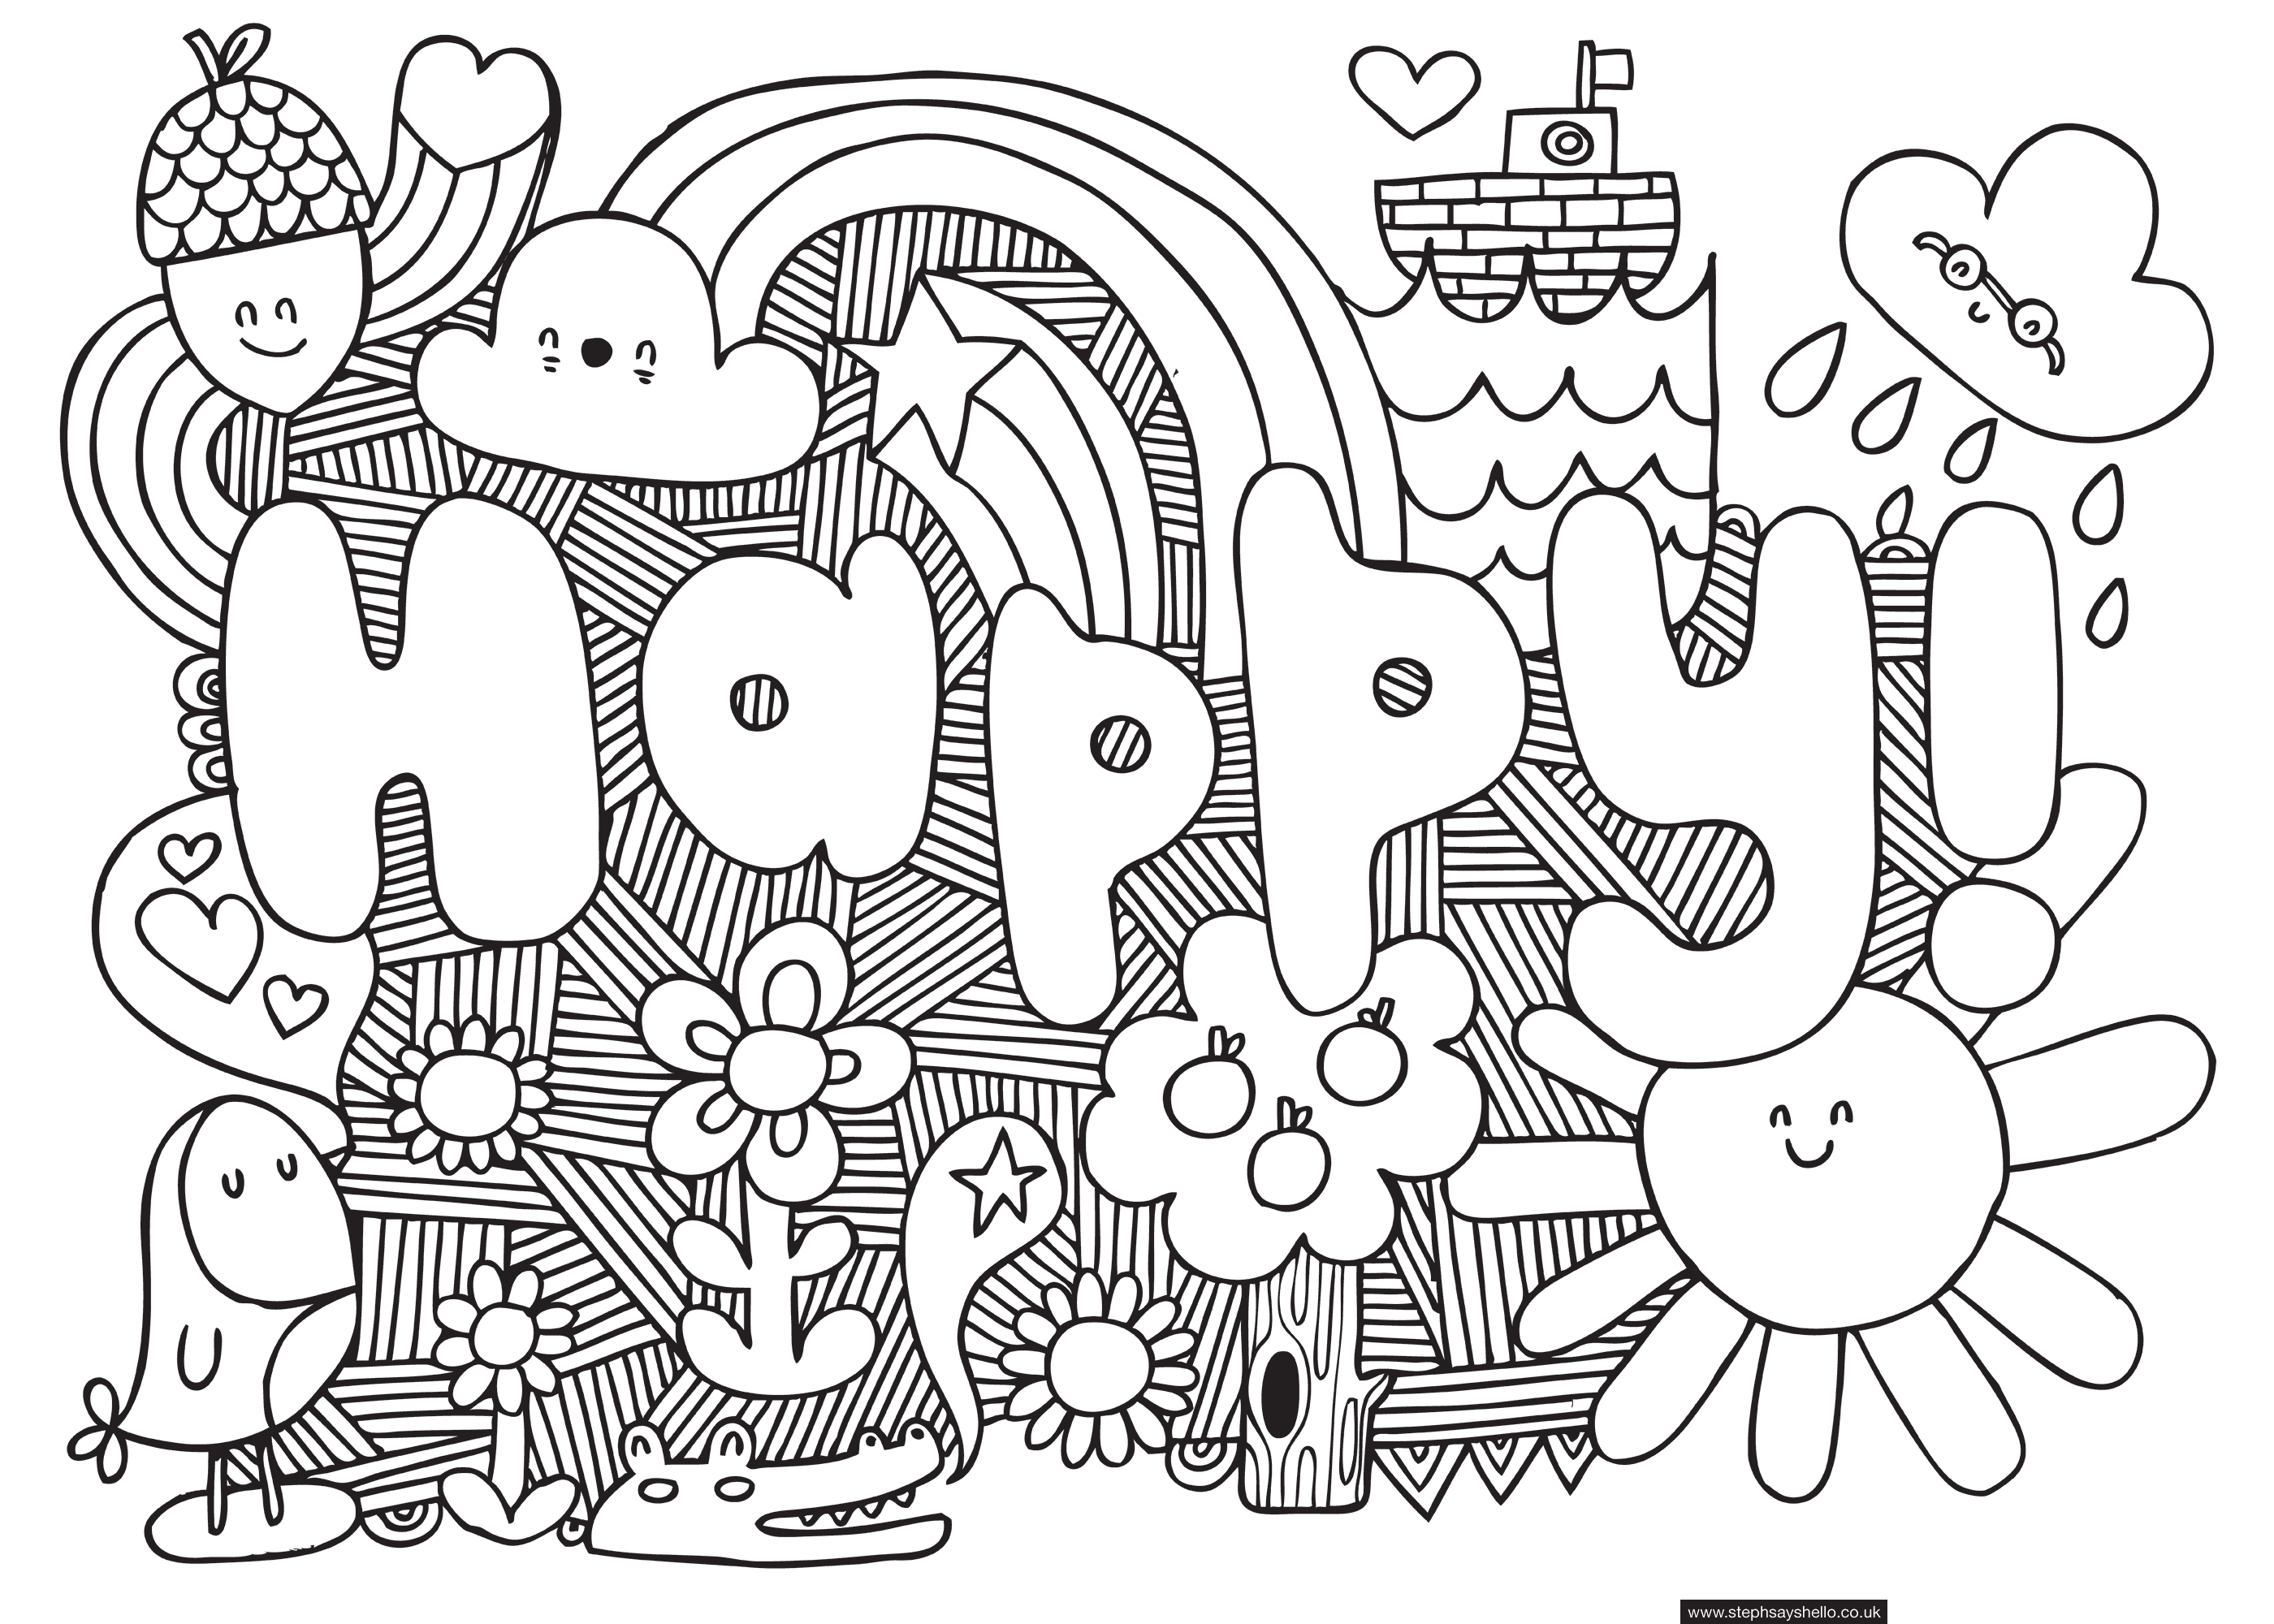 carlton hibberts patterns for colouring 0160 guest pattern by steph baxter coloring sheets for kidscool - Color Patterns For Kids